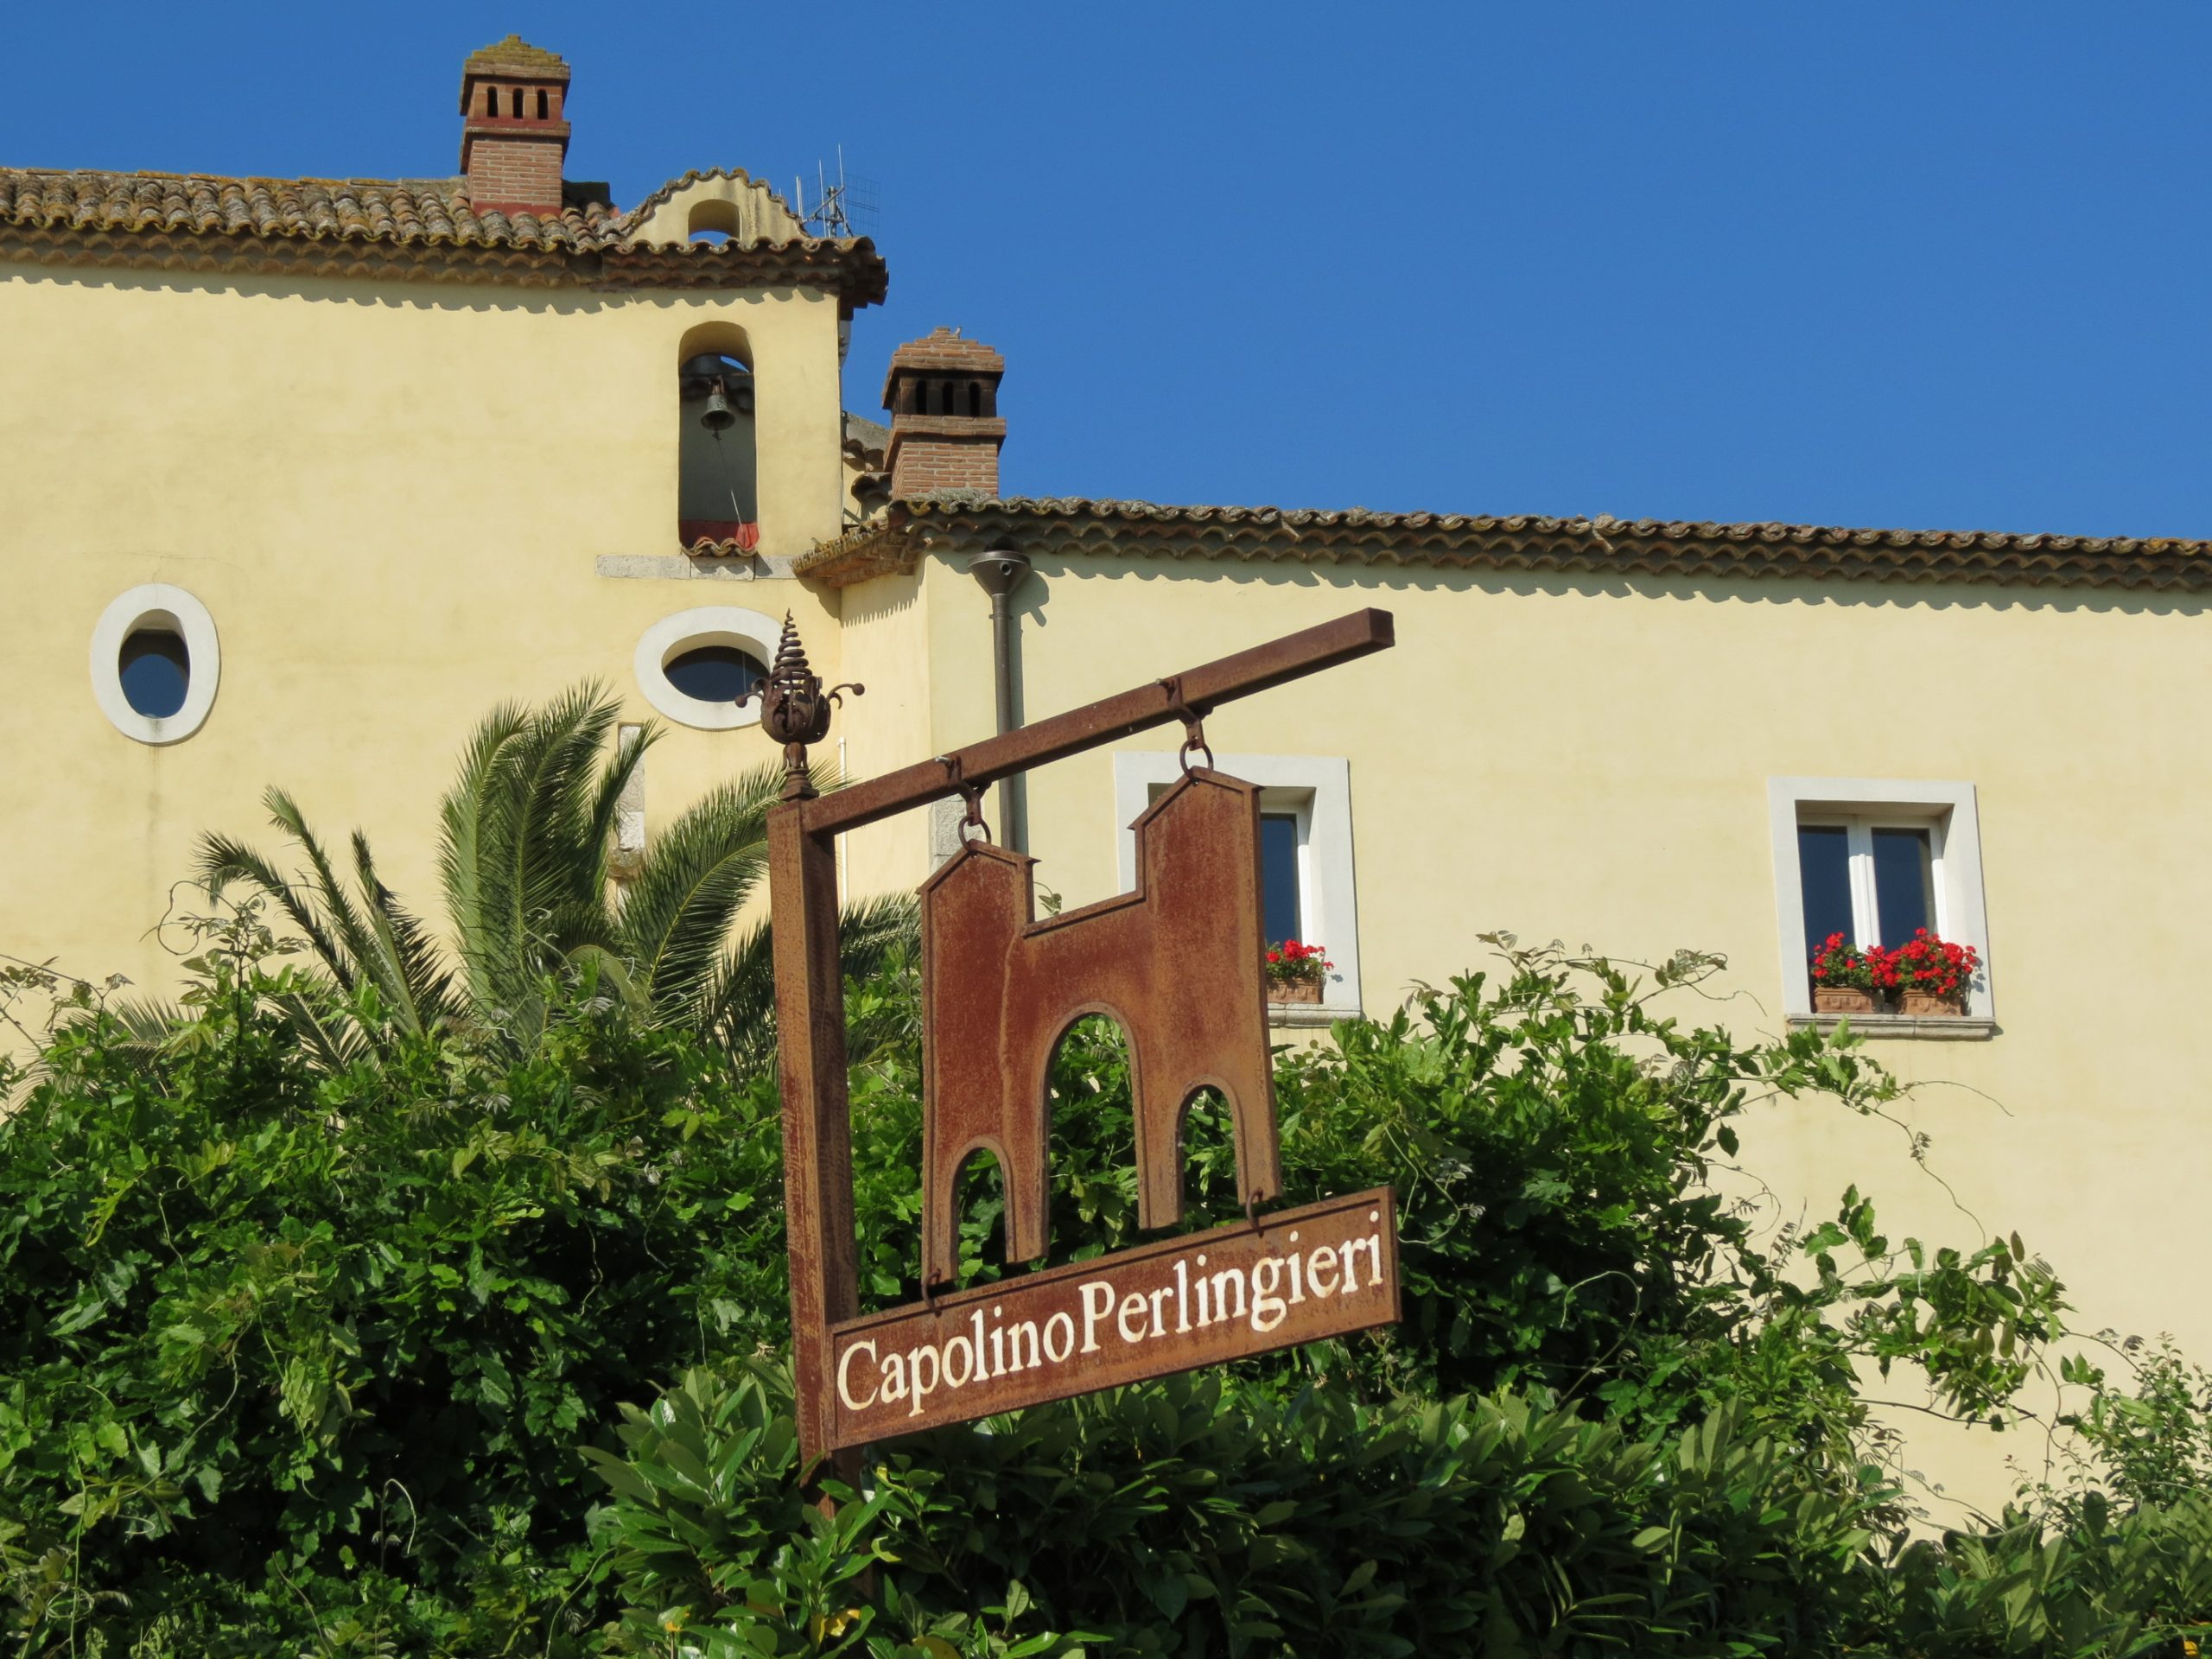 Capolino Perlingieri wooden signboard on the background of a beautiful mansion.